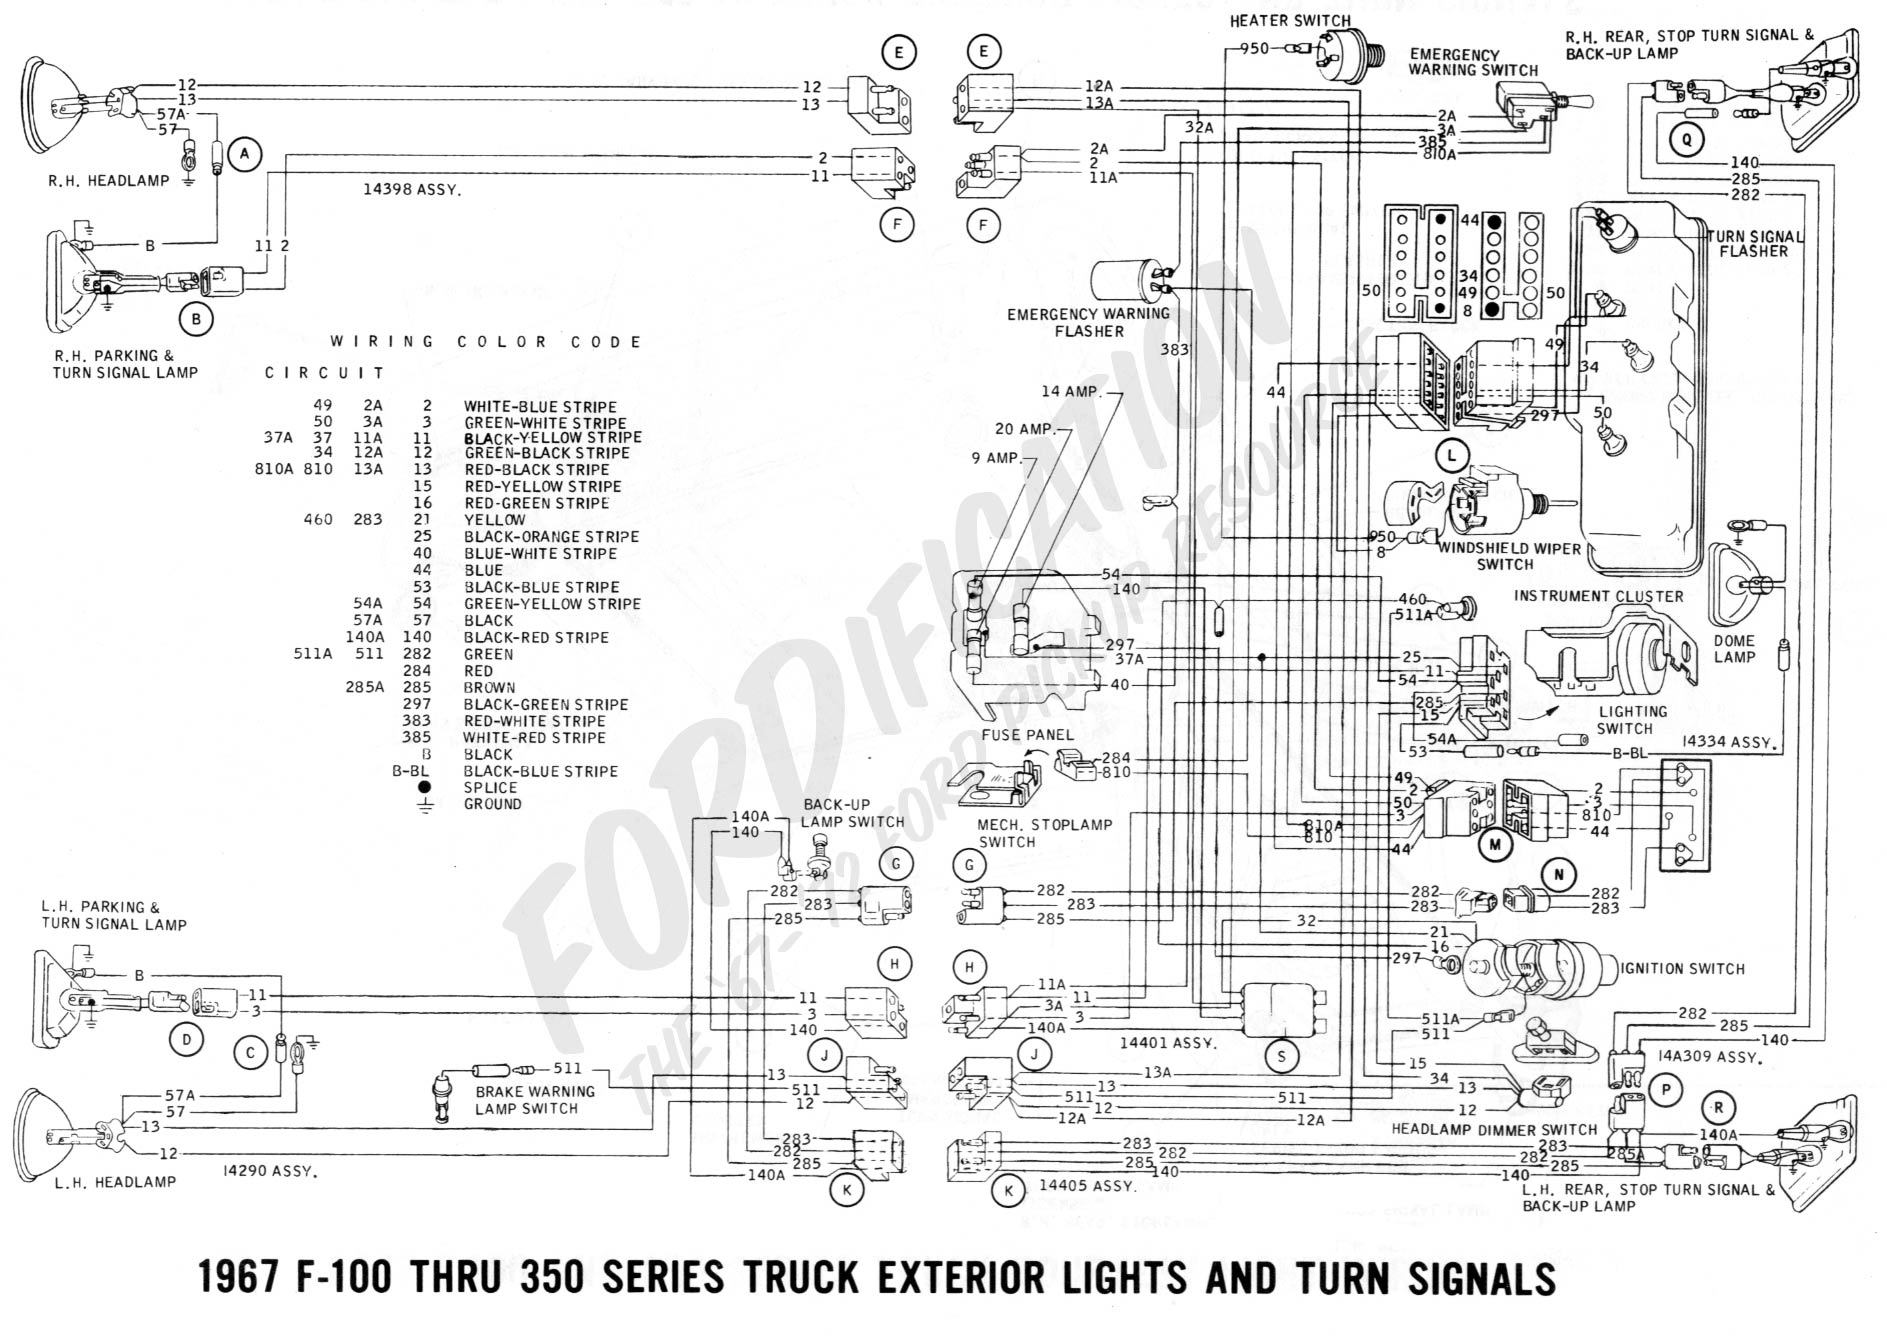 Ignition Switch Wiring For A 1954 Ford Car on 1971 ford f 250 fuse box